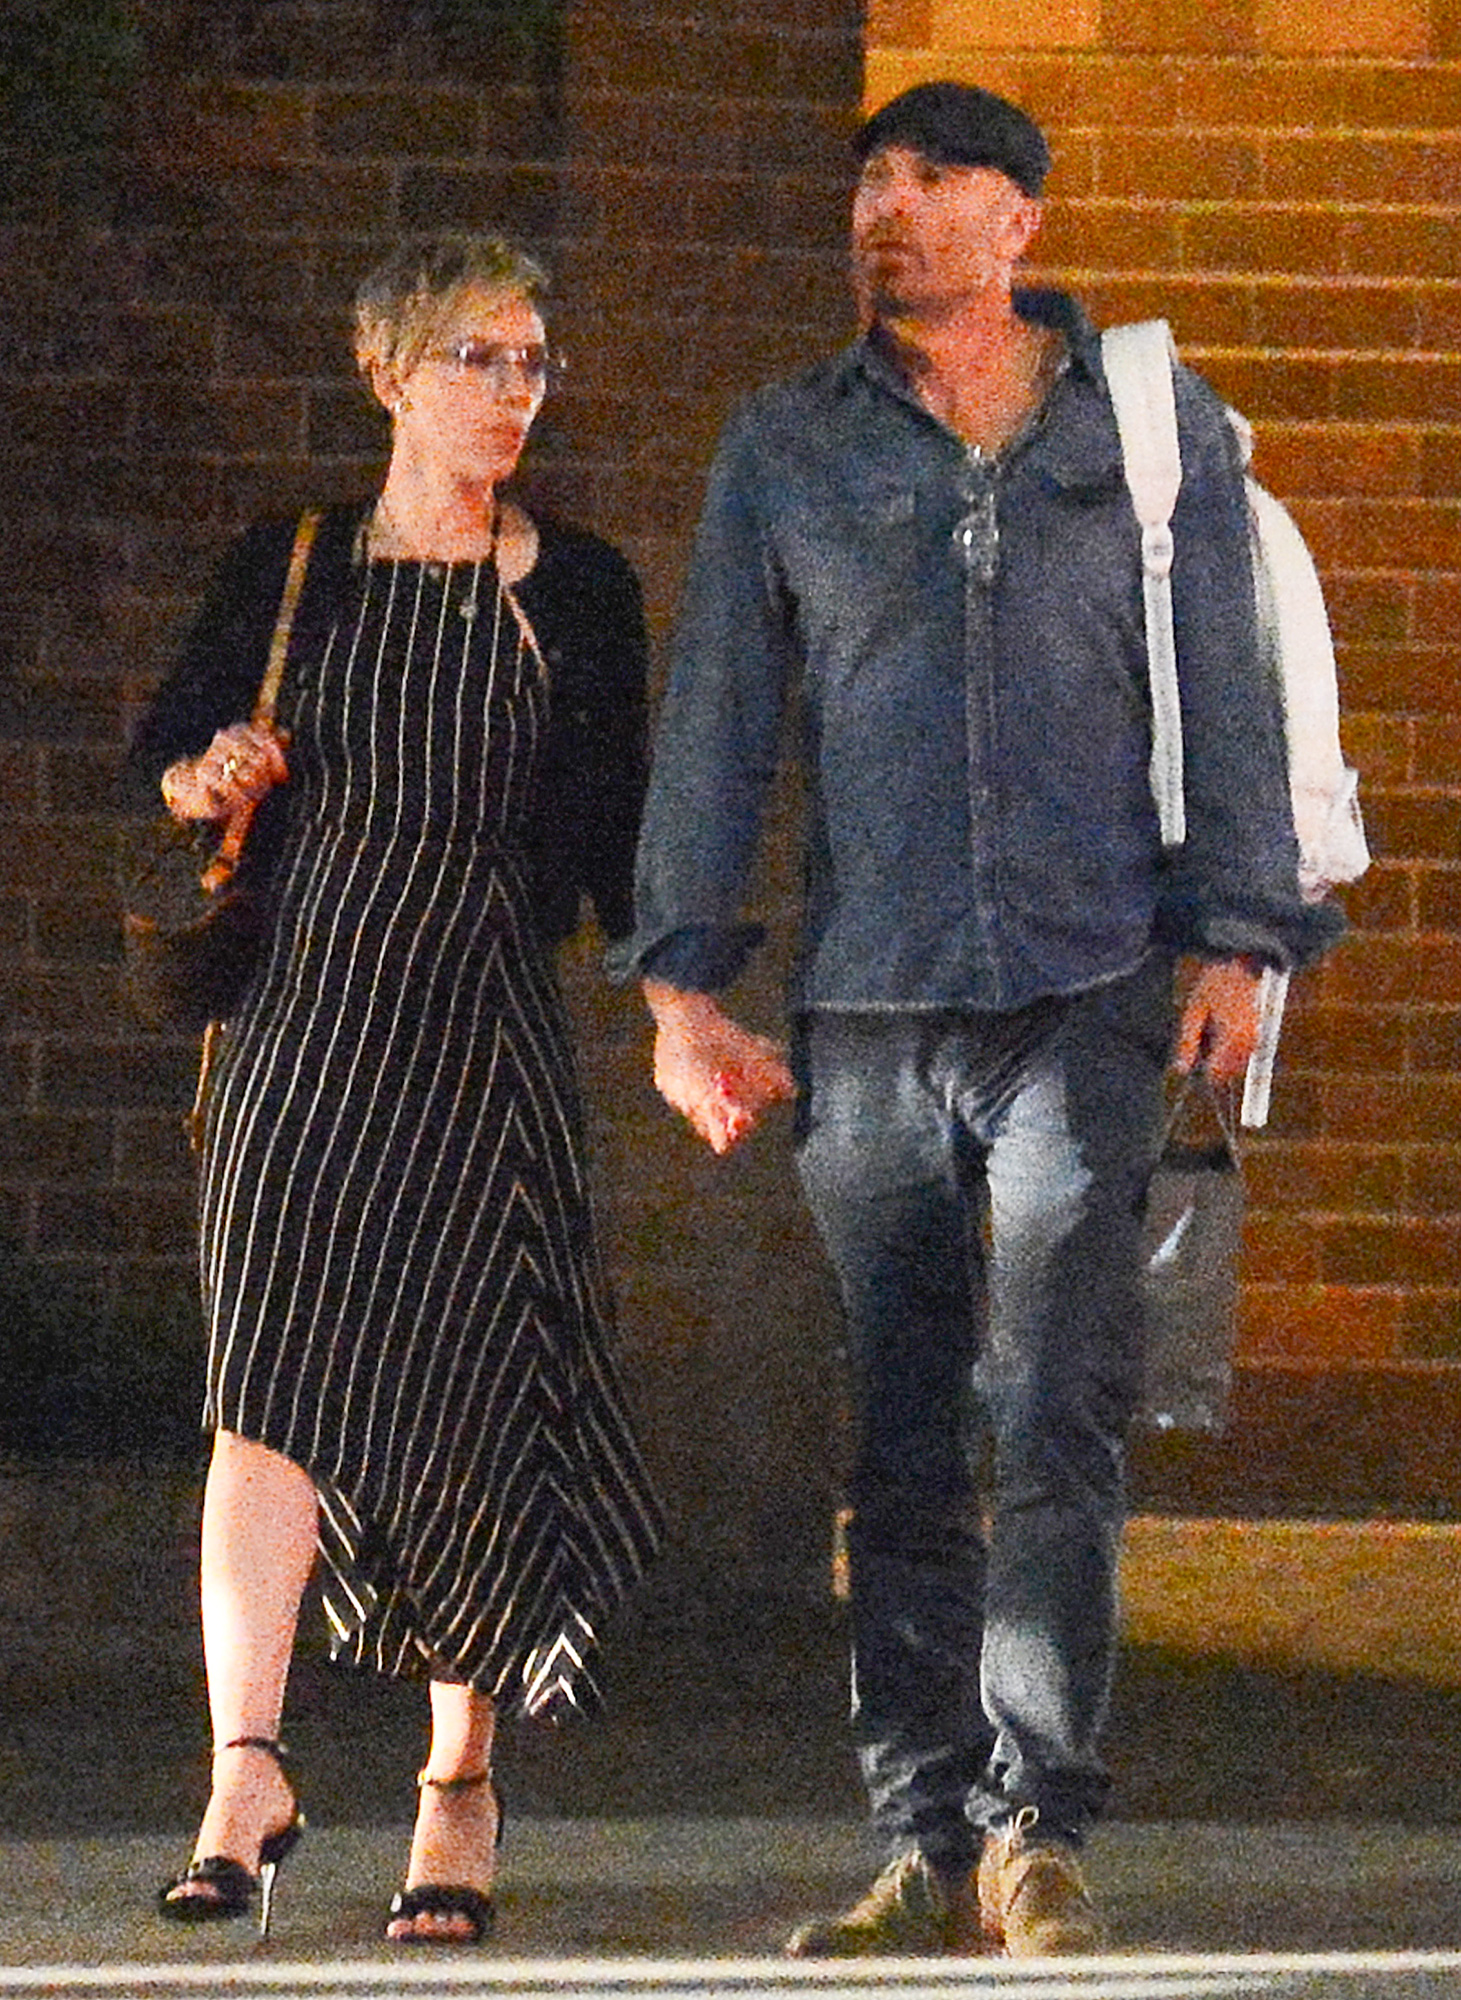 PREMIUM EXCLUSIVE: Scarlett Johansson has a Late Night with a Mystery Man After a Romantic Dinner in New York City